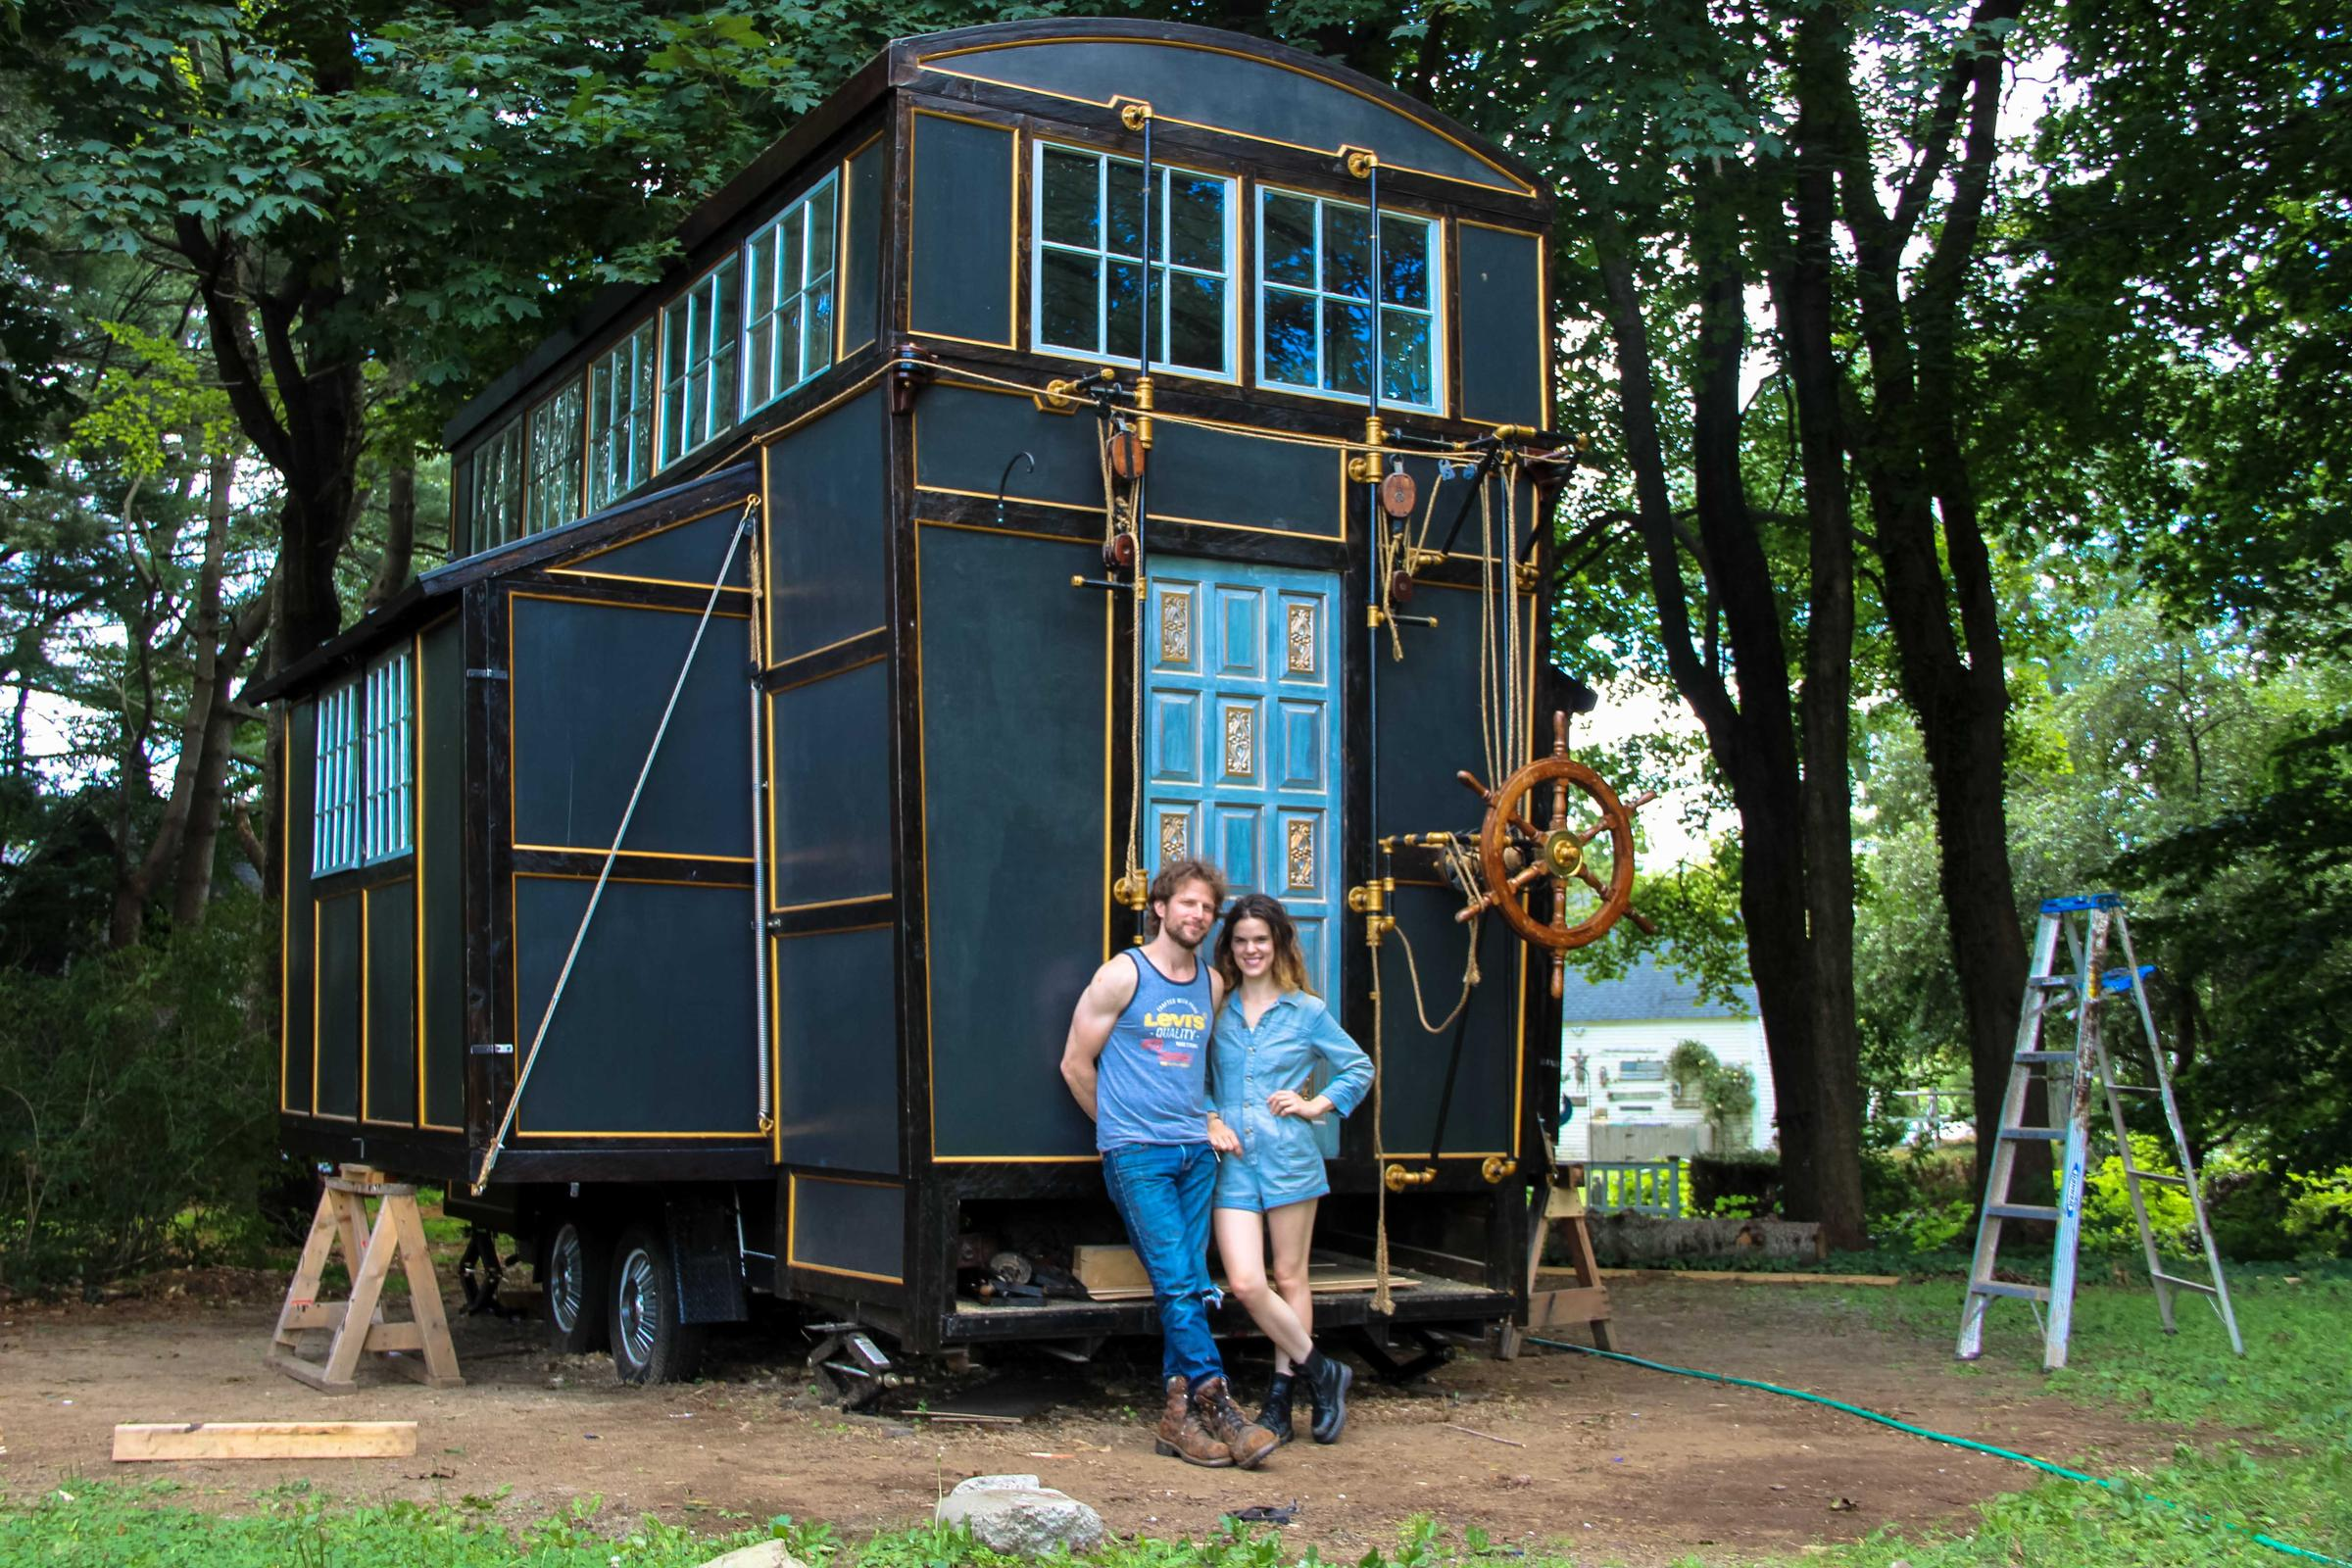 Brandon Batchelder Chloe Barcelou And Their Tiny House Contraption